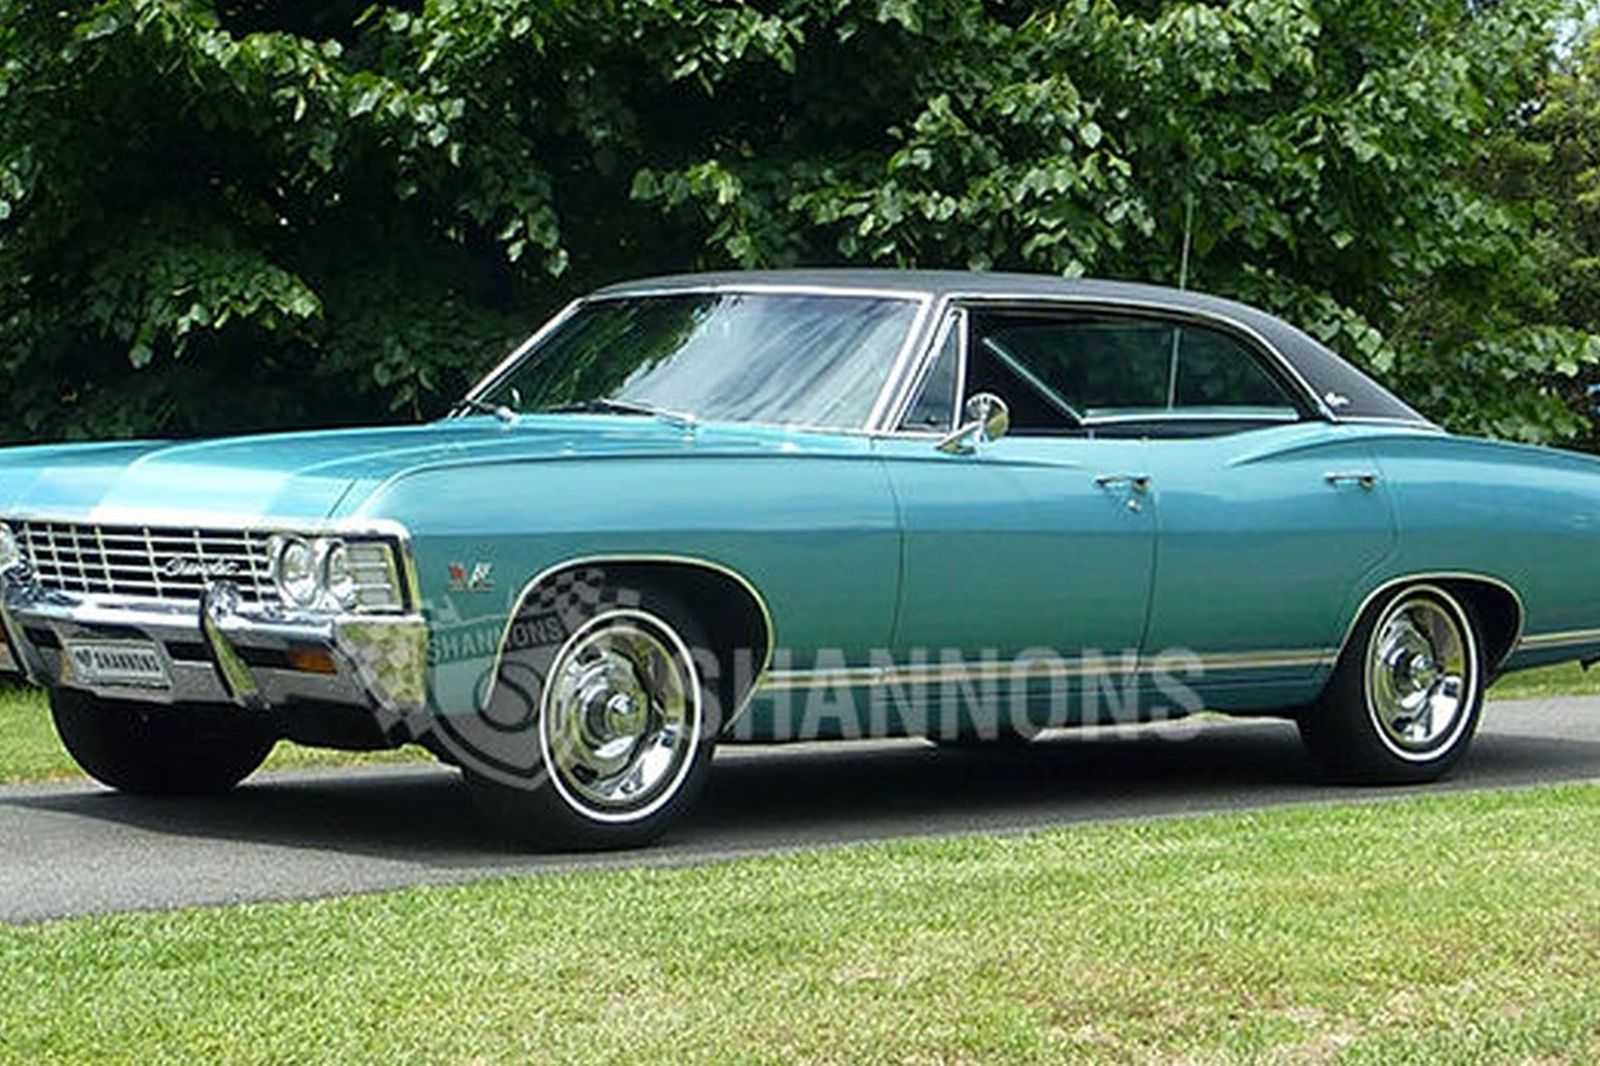 Chevrolet Caprice 396ci Pillarless Sedan Lhd Auctions Lot 25 1966 Chevy For Sale